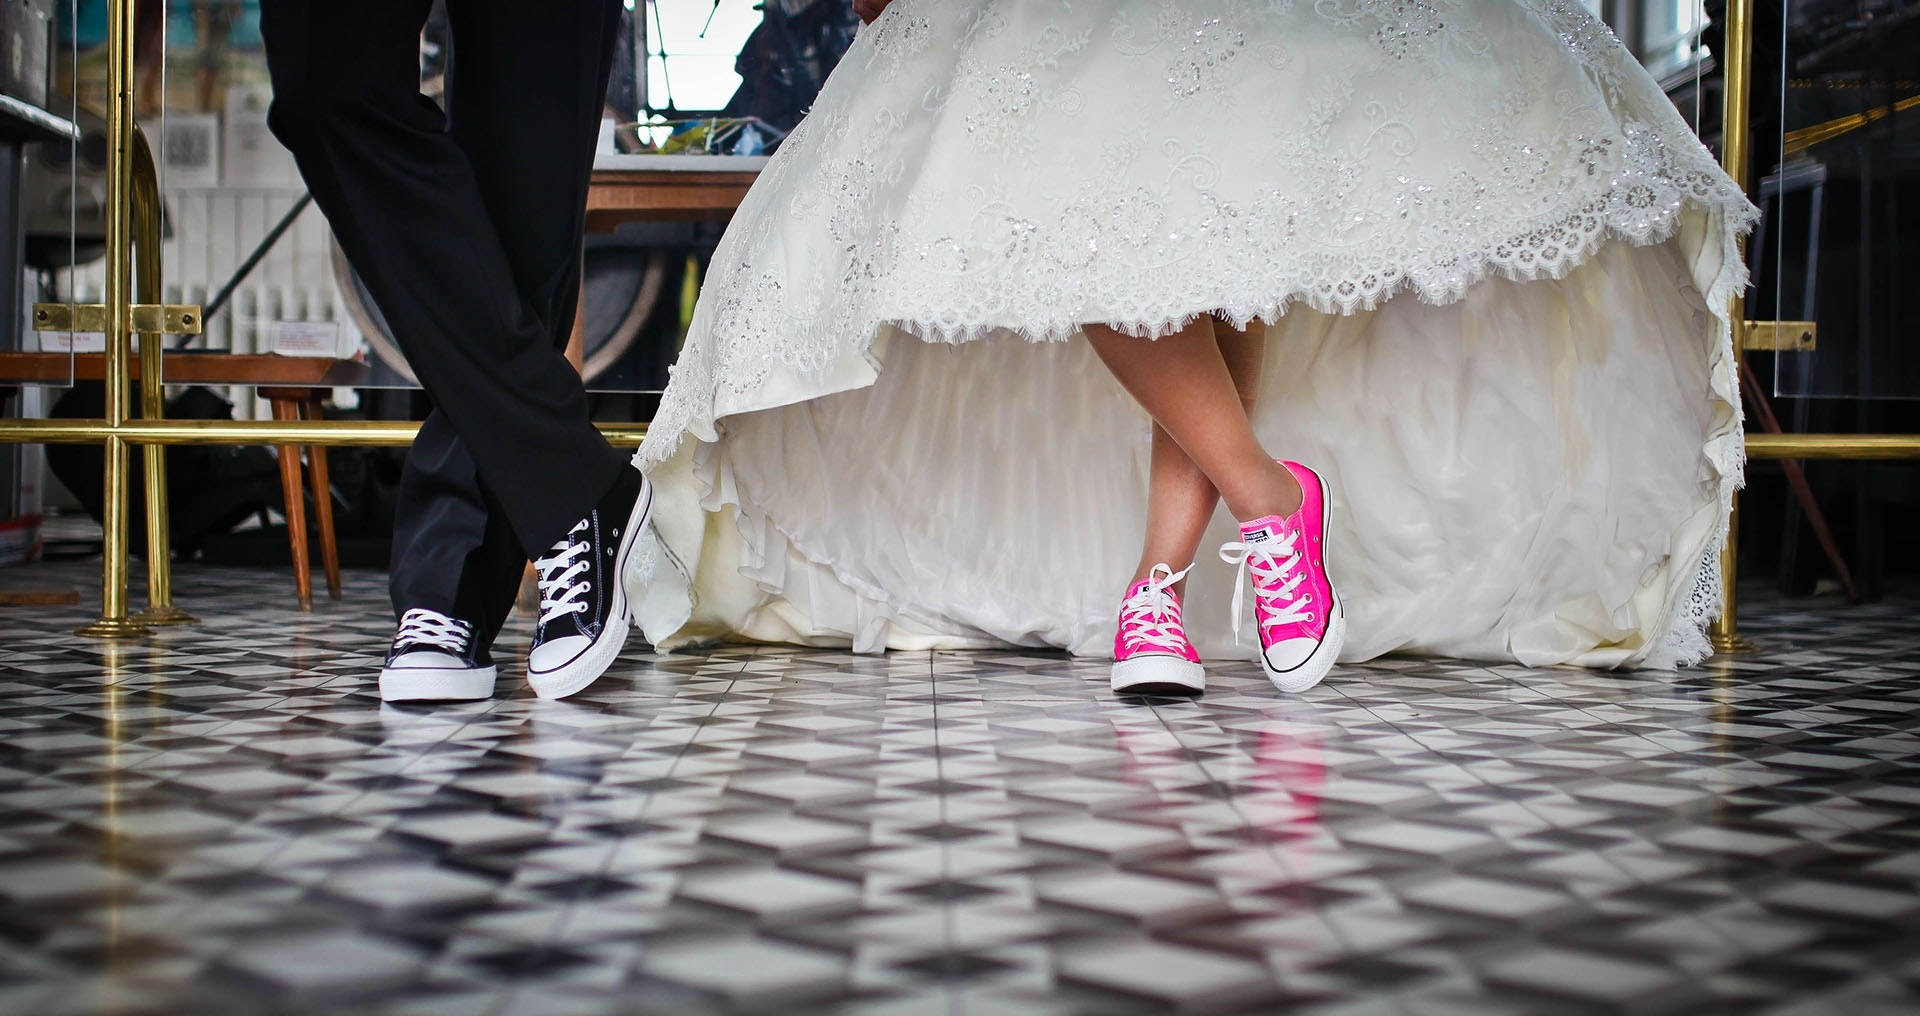 FIVE WAYS TO BUDGET FOR YOUR WEDDING